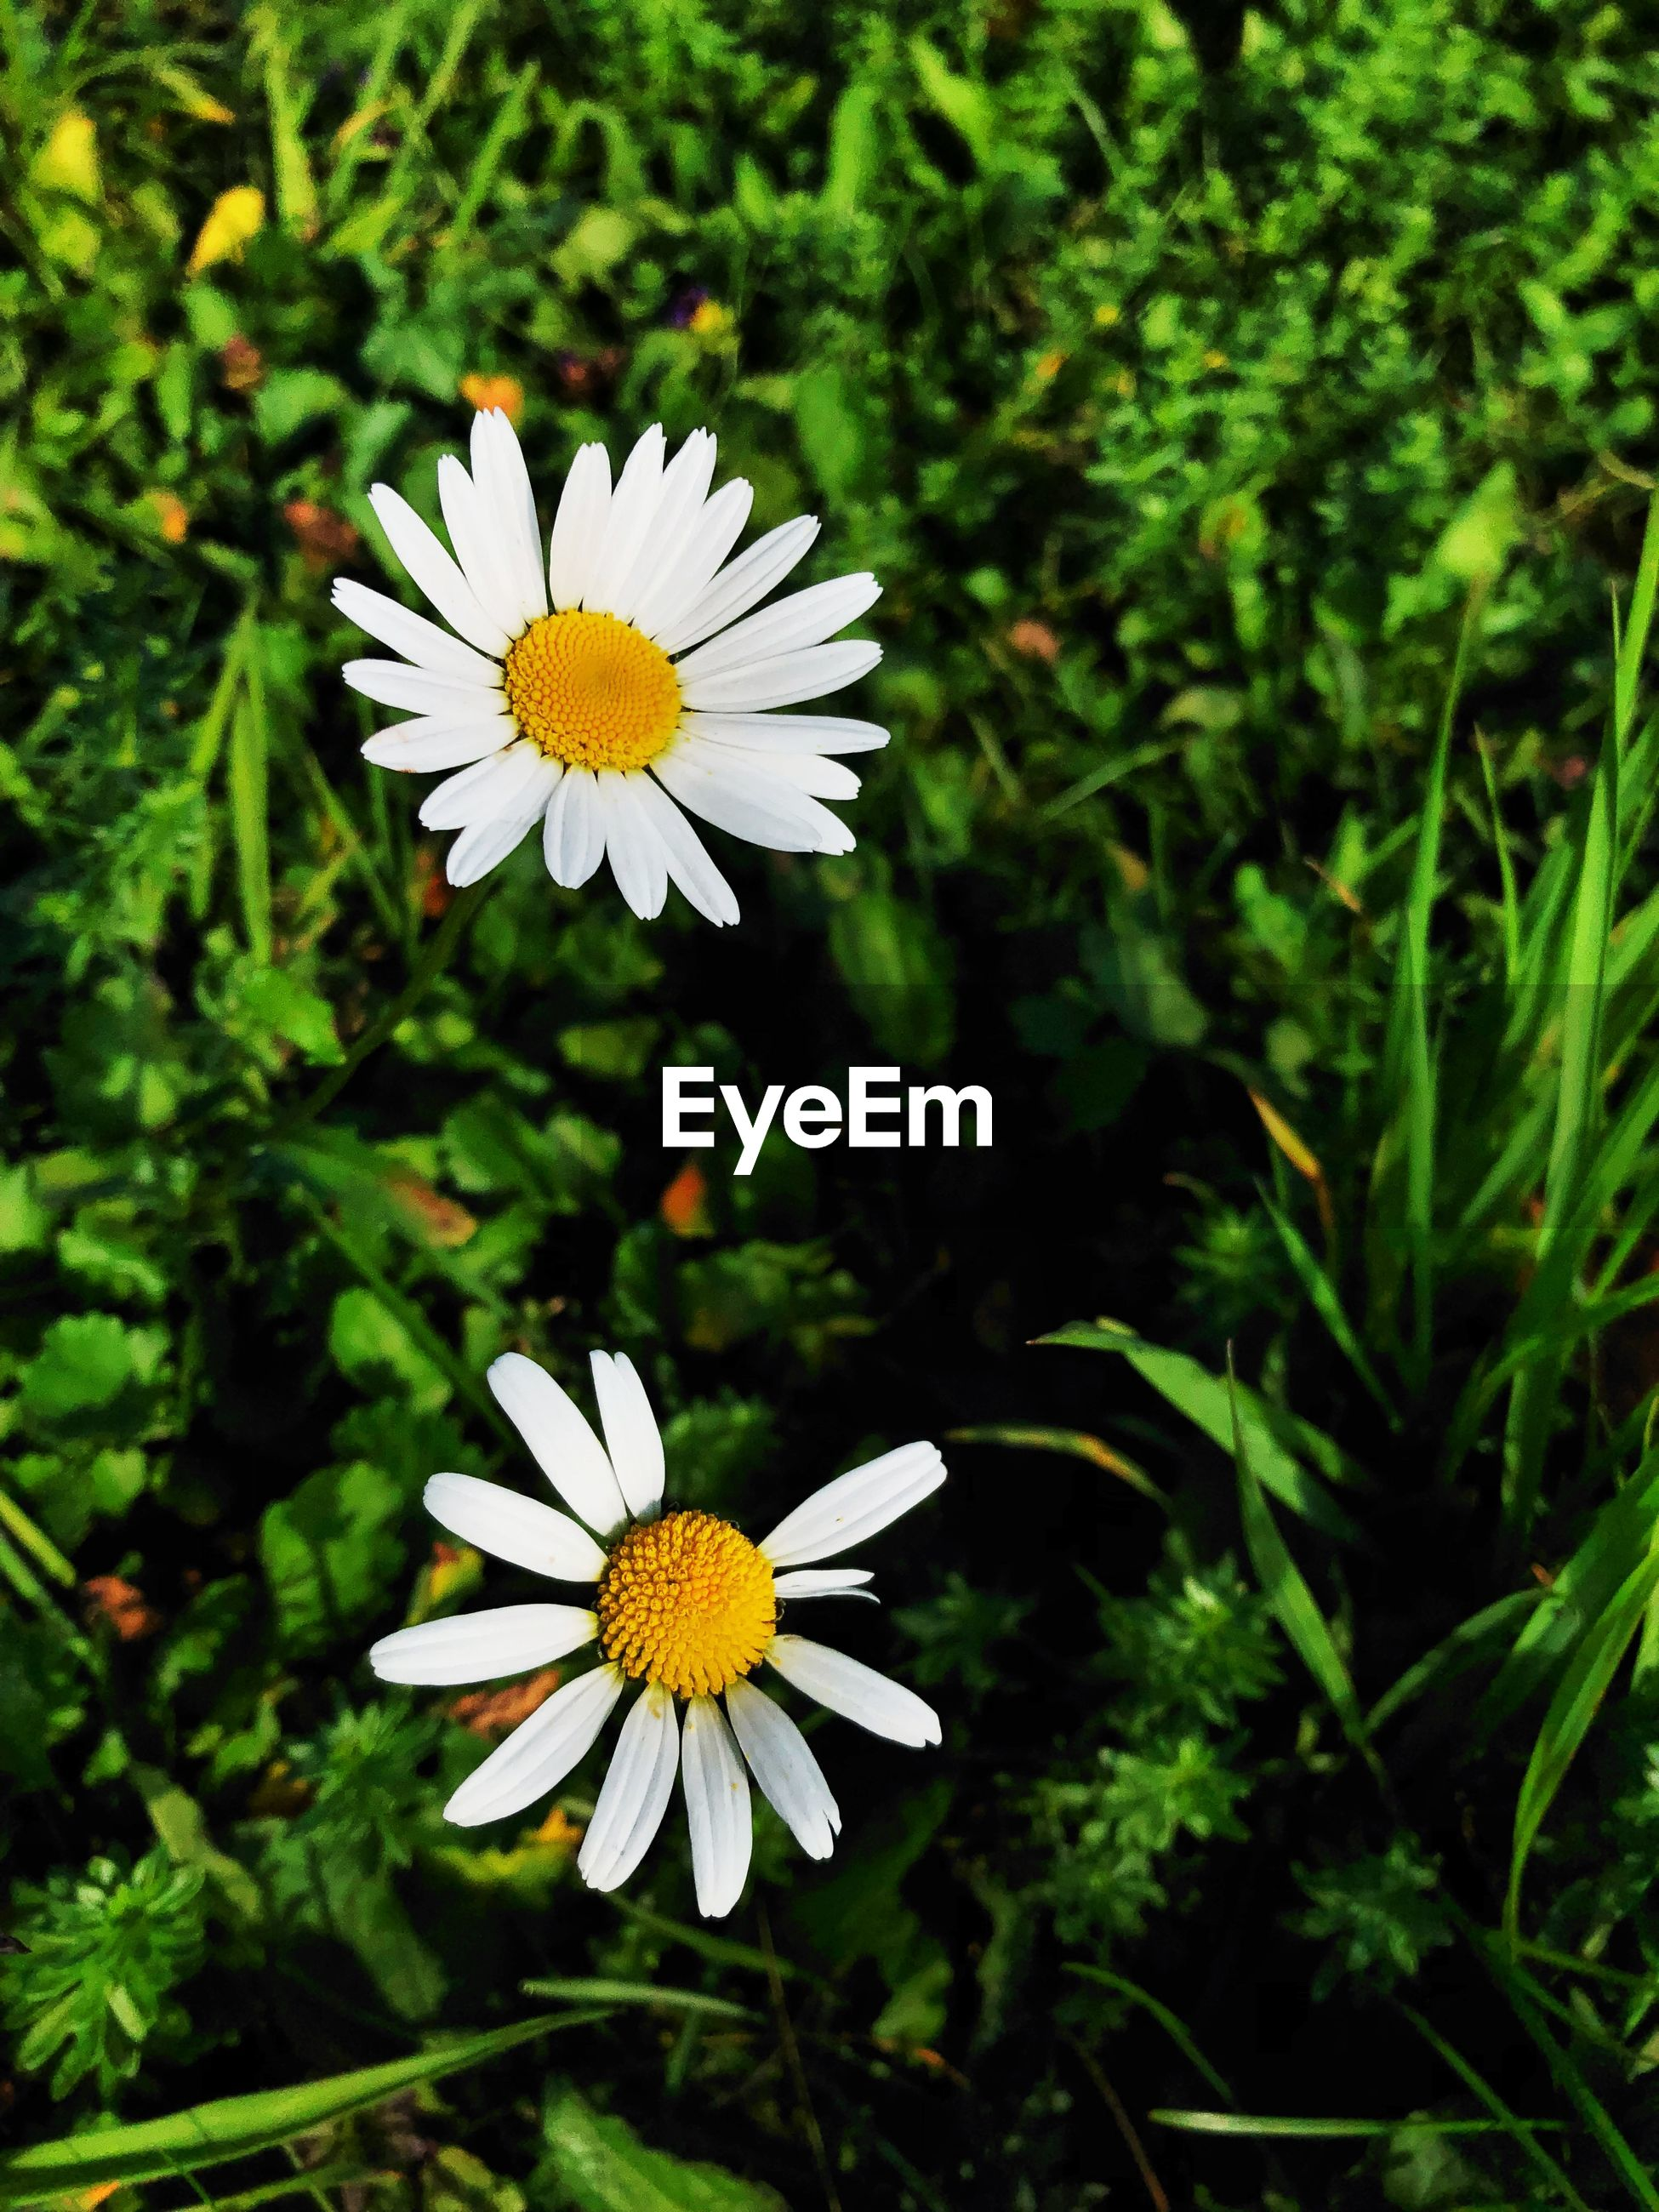 CLOSE-UP OF WHITE DAISY FLOWER AGAINST PLANTS